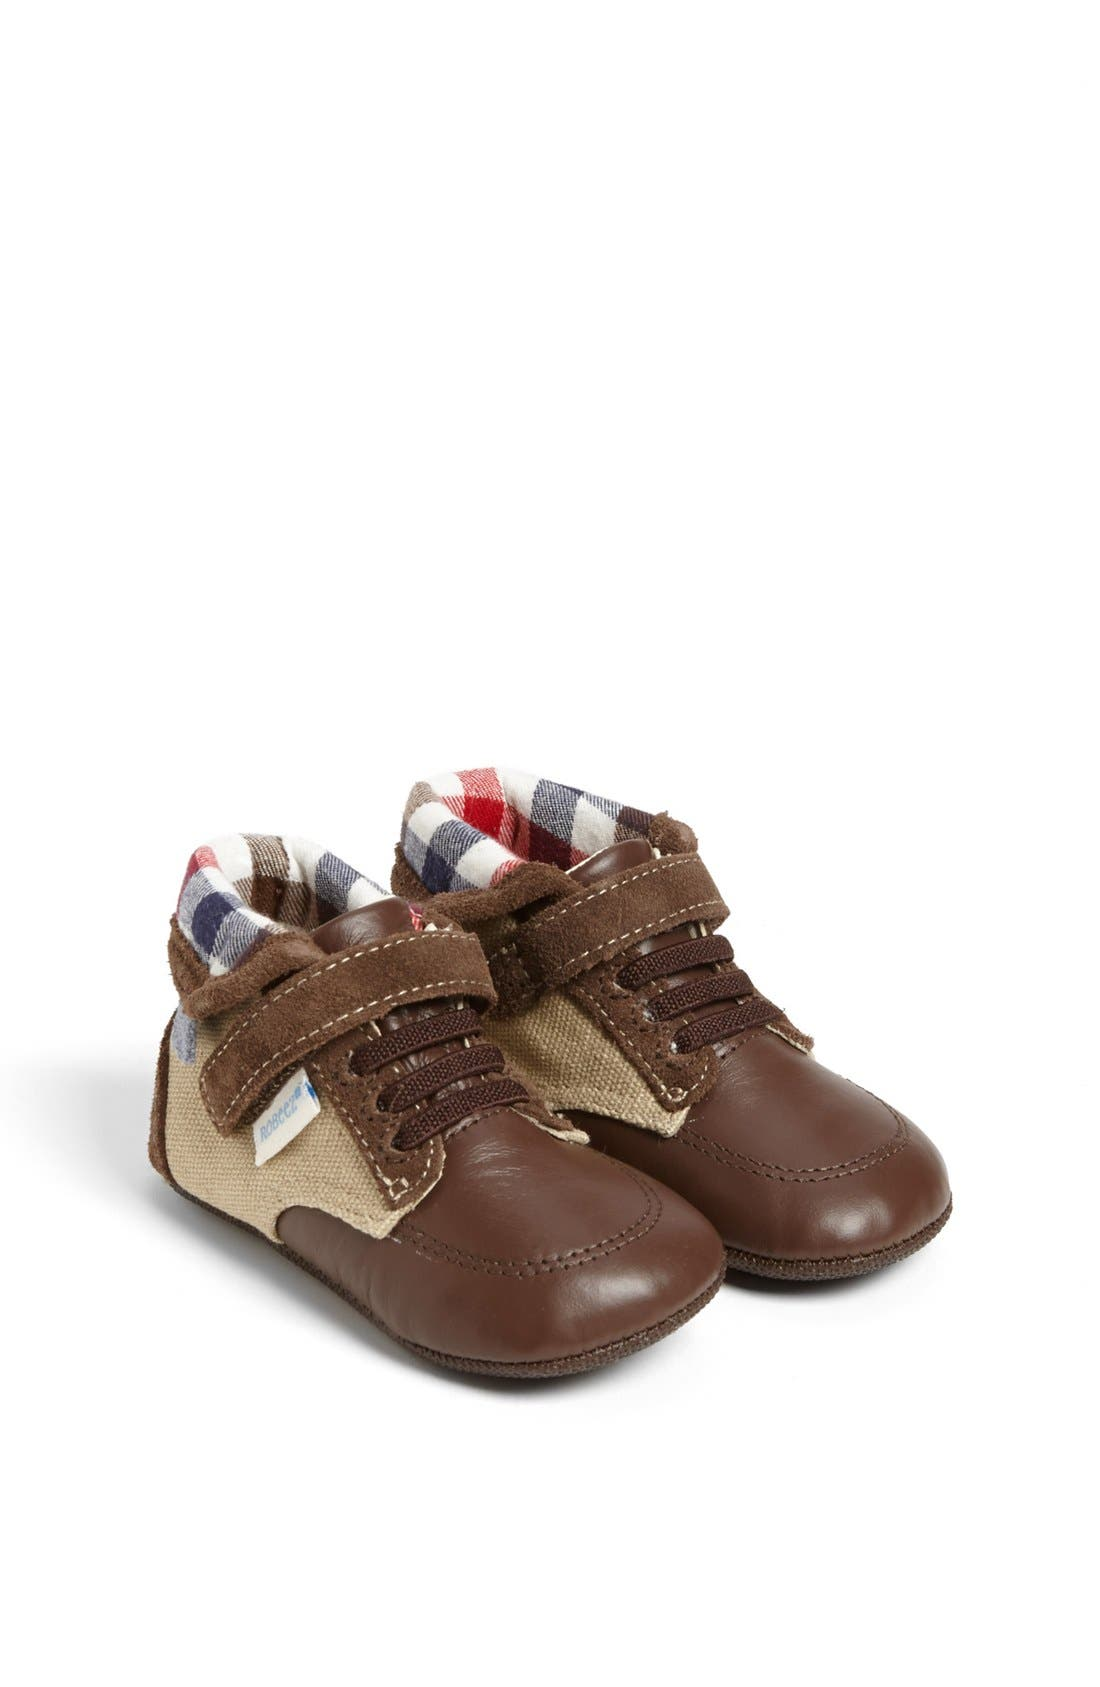 Alternate Image 1 Selected - Robeez® Mini Shoez 'Taylor' Boot (Baby & Walker)